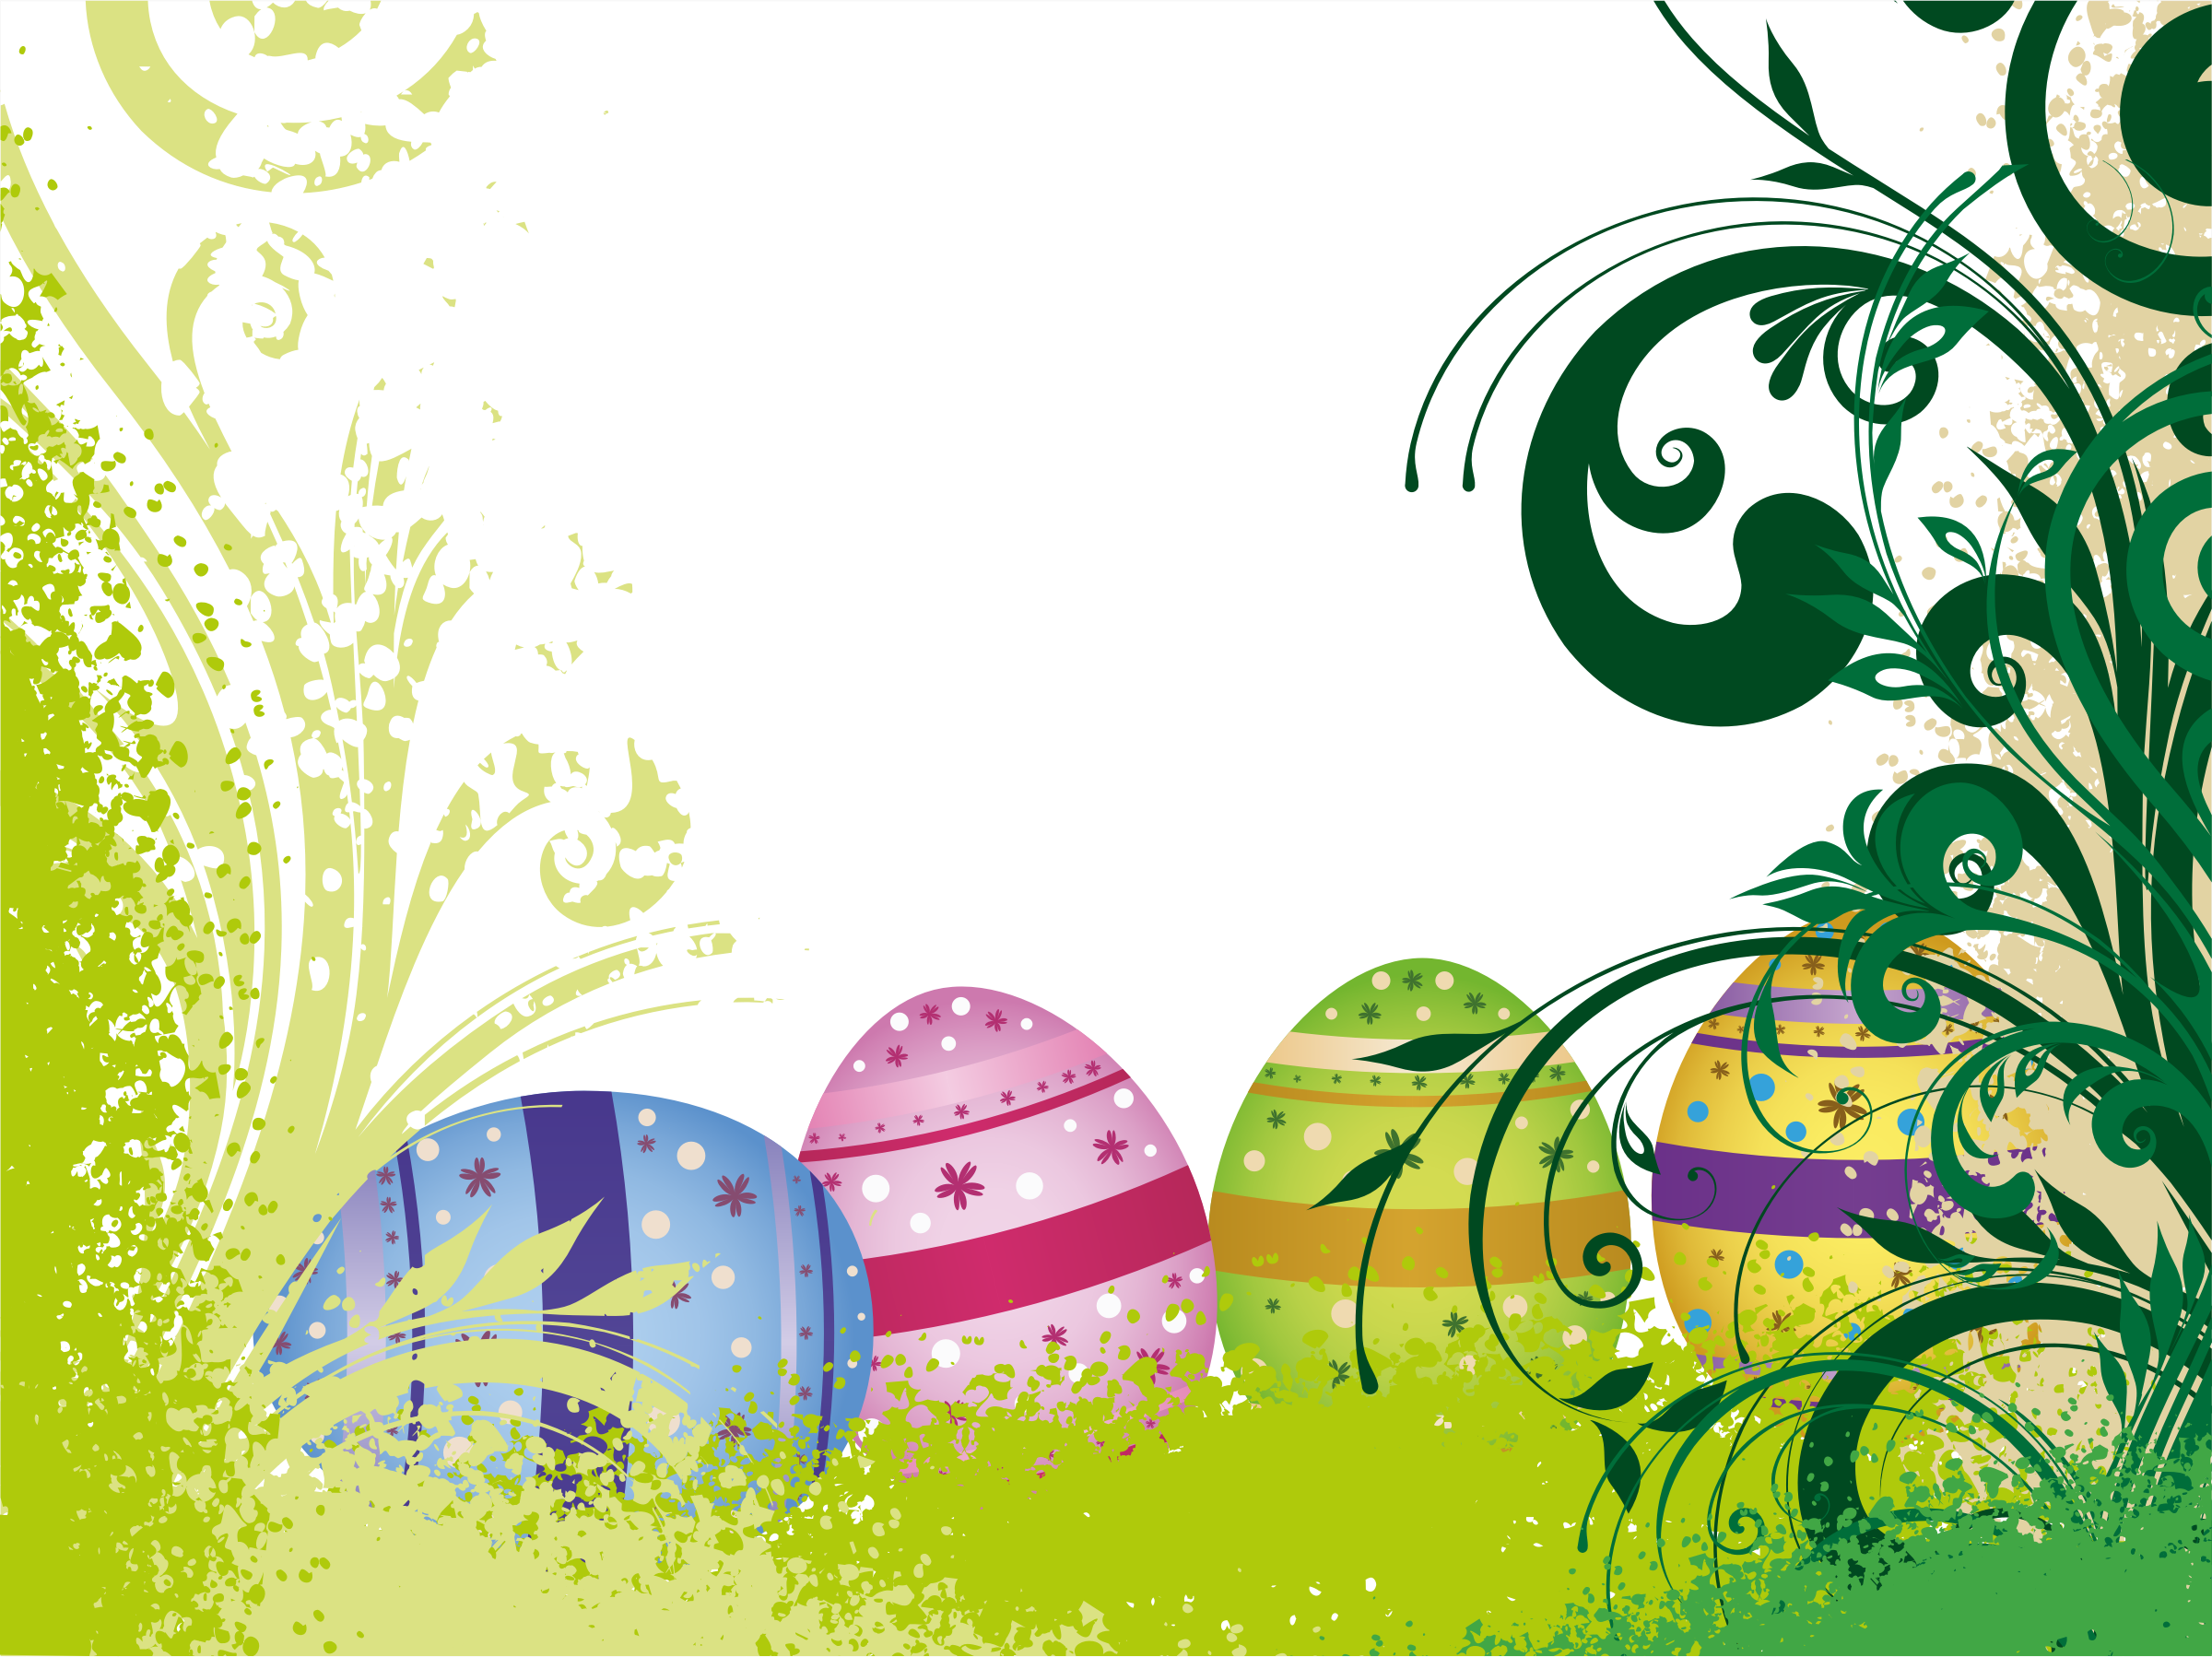 Easter Eggs Flourish by GDJ